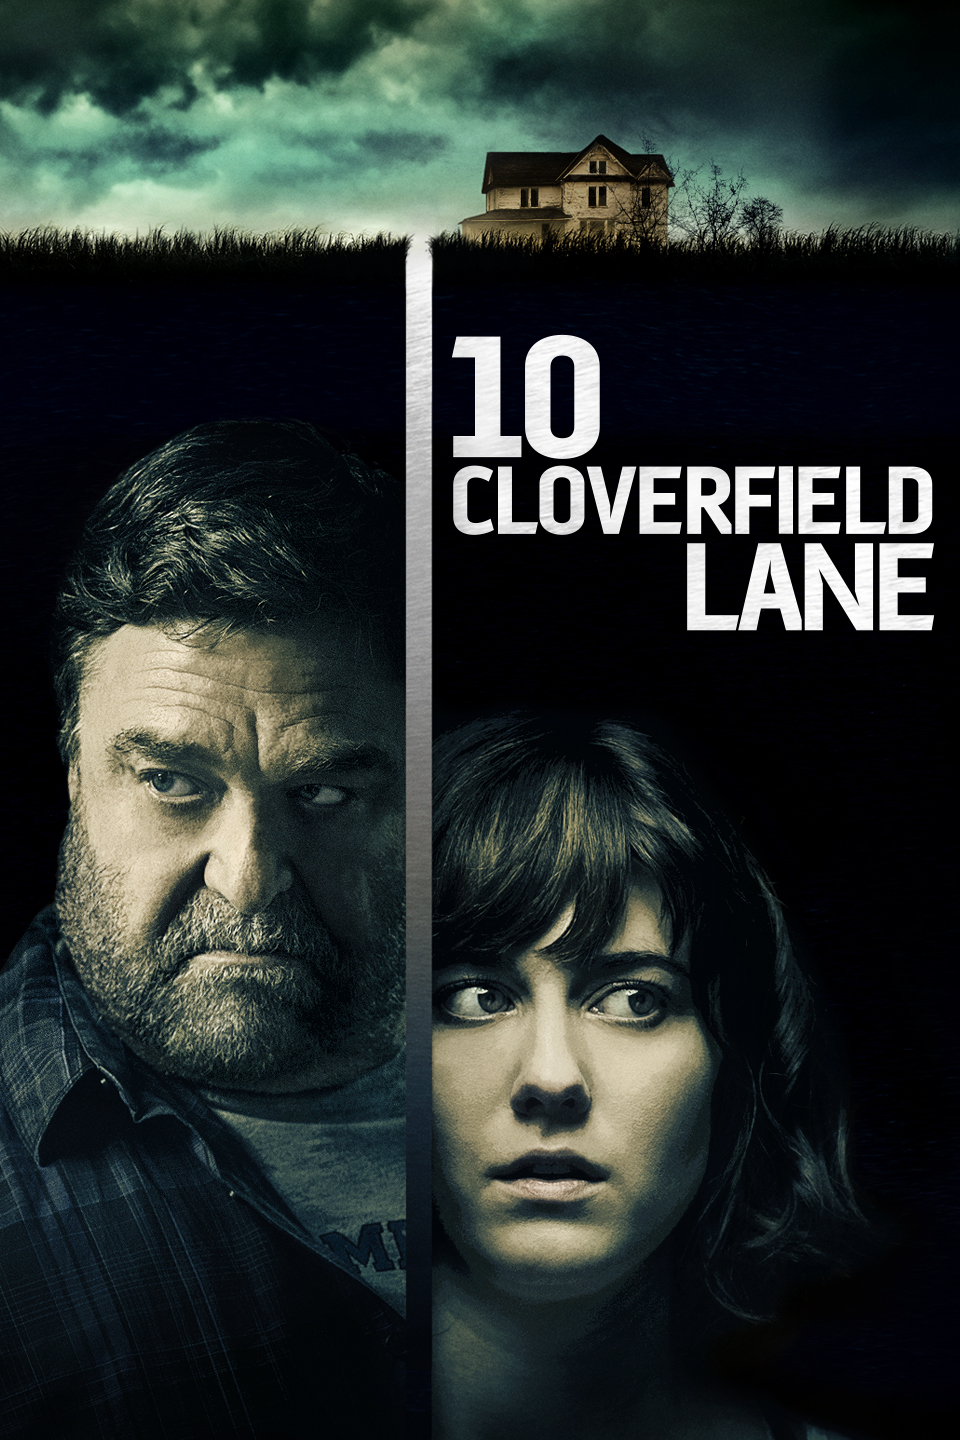 10-Cloverfield-Lane-960x1440-Portrate